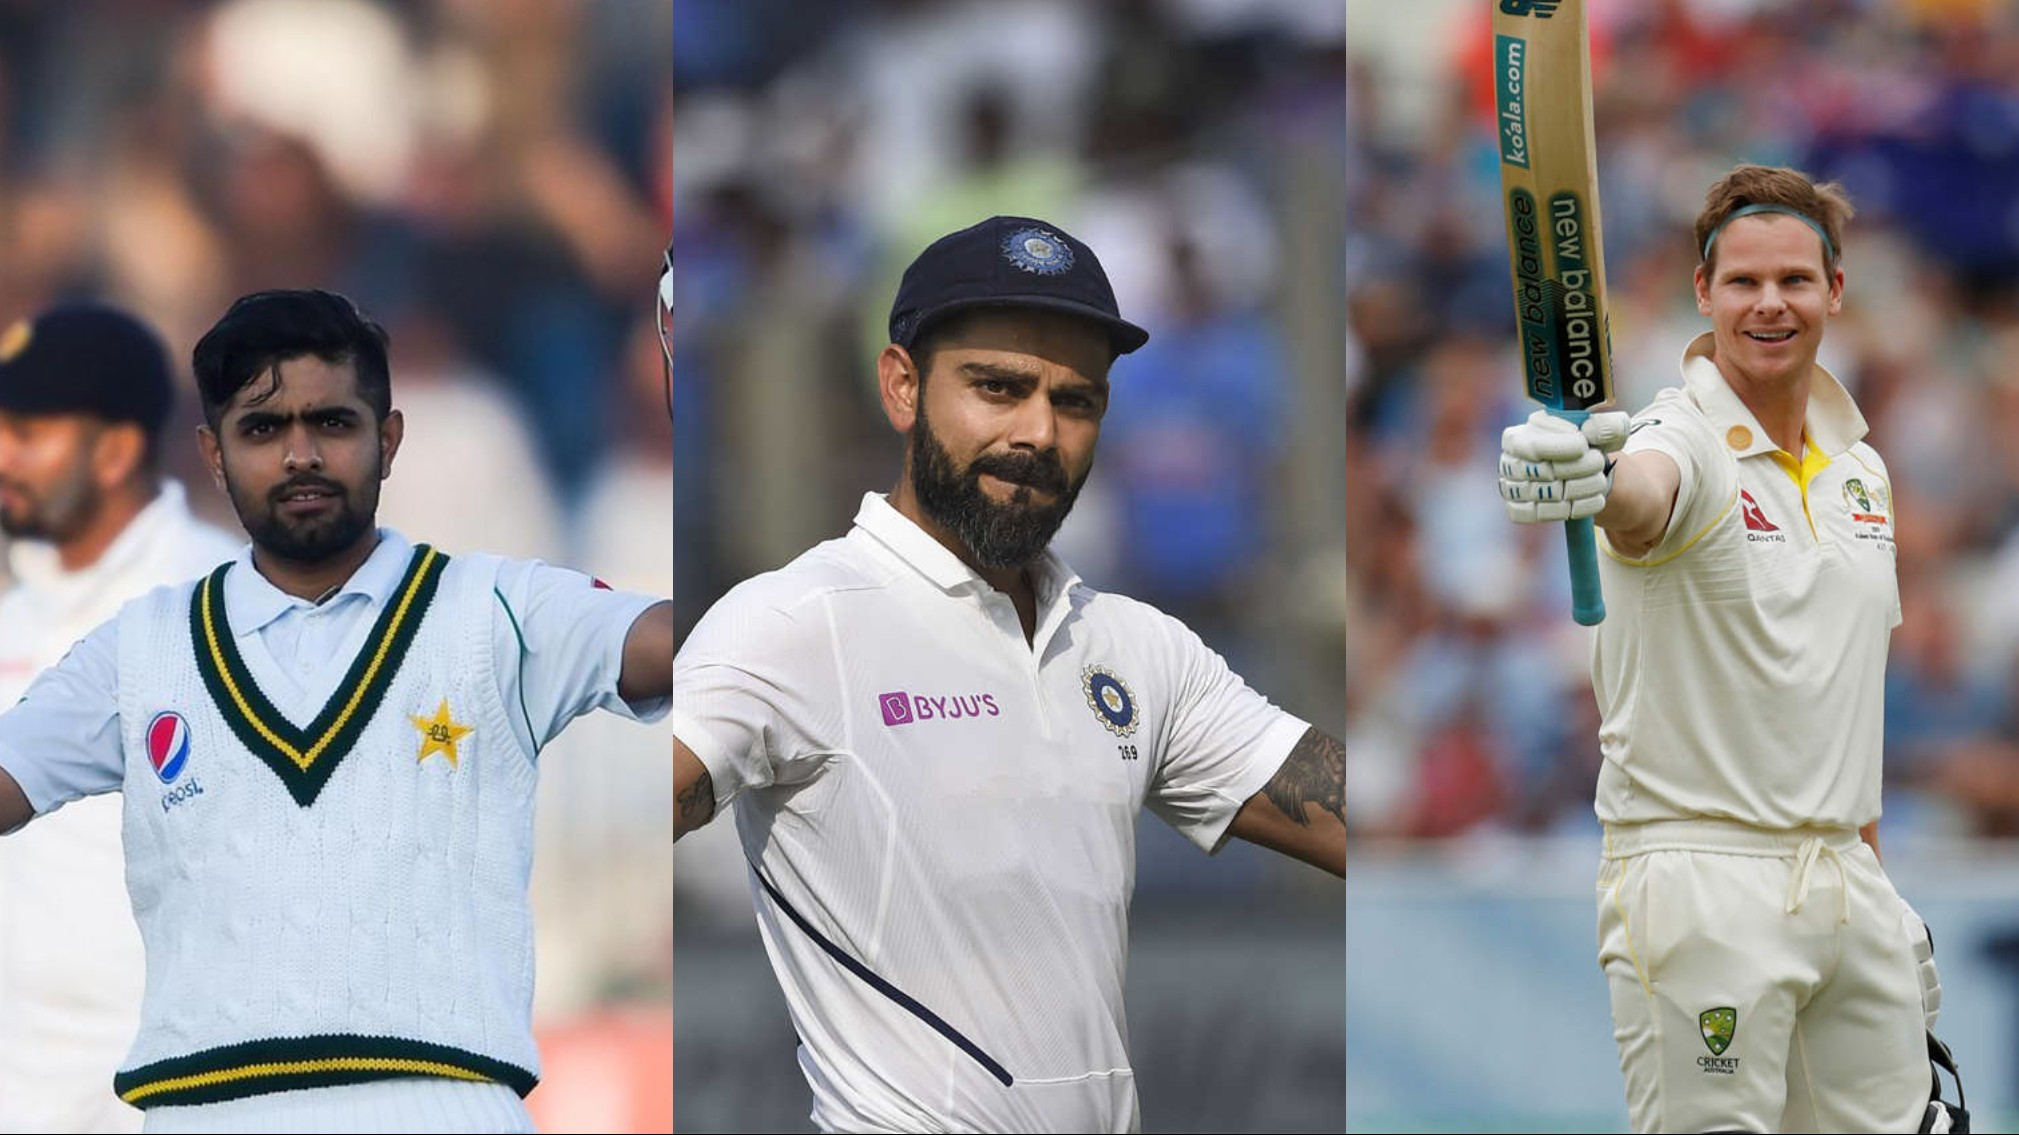 5 potential candidates to make 10,000 runs in Test cricket